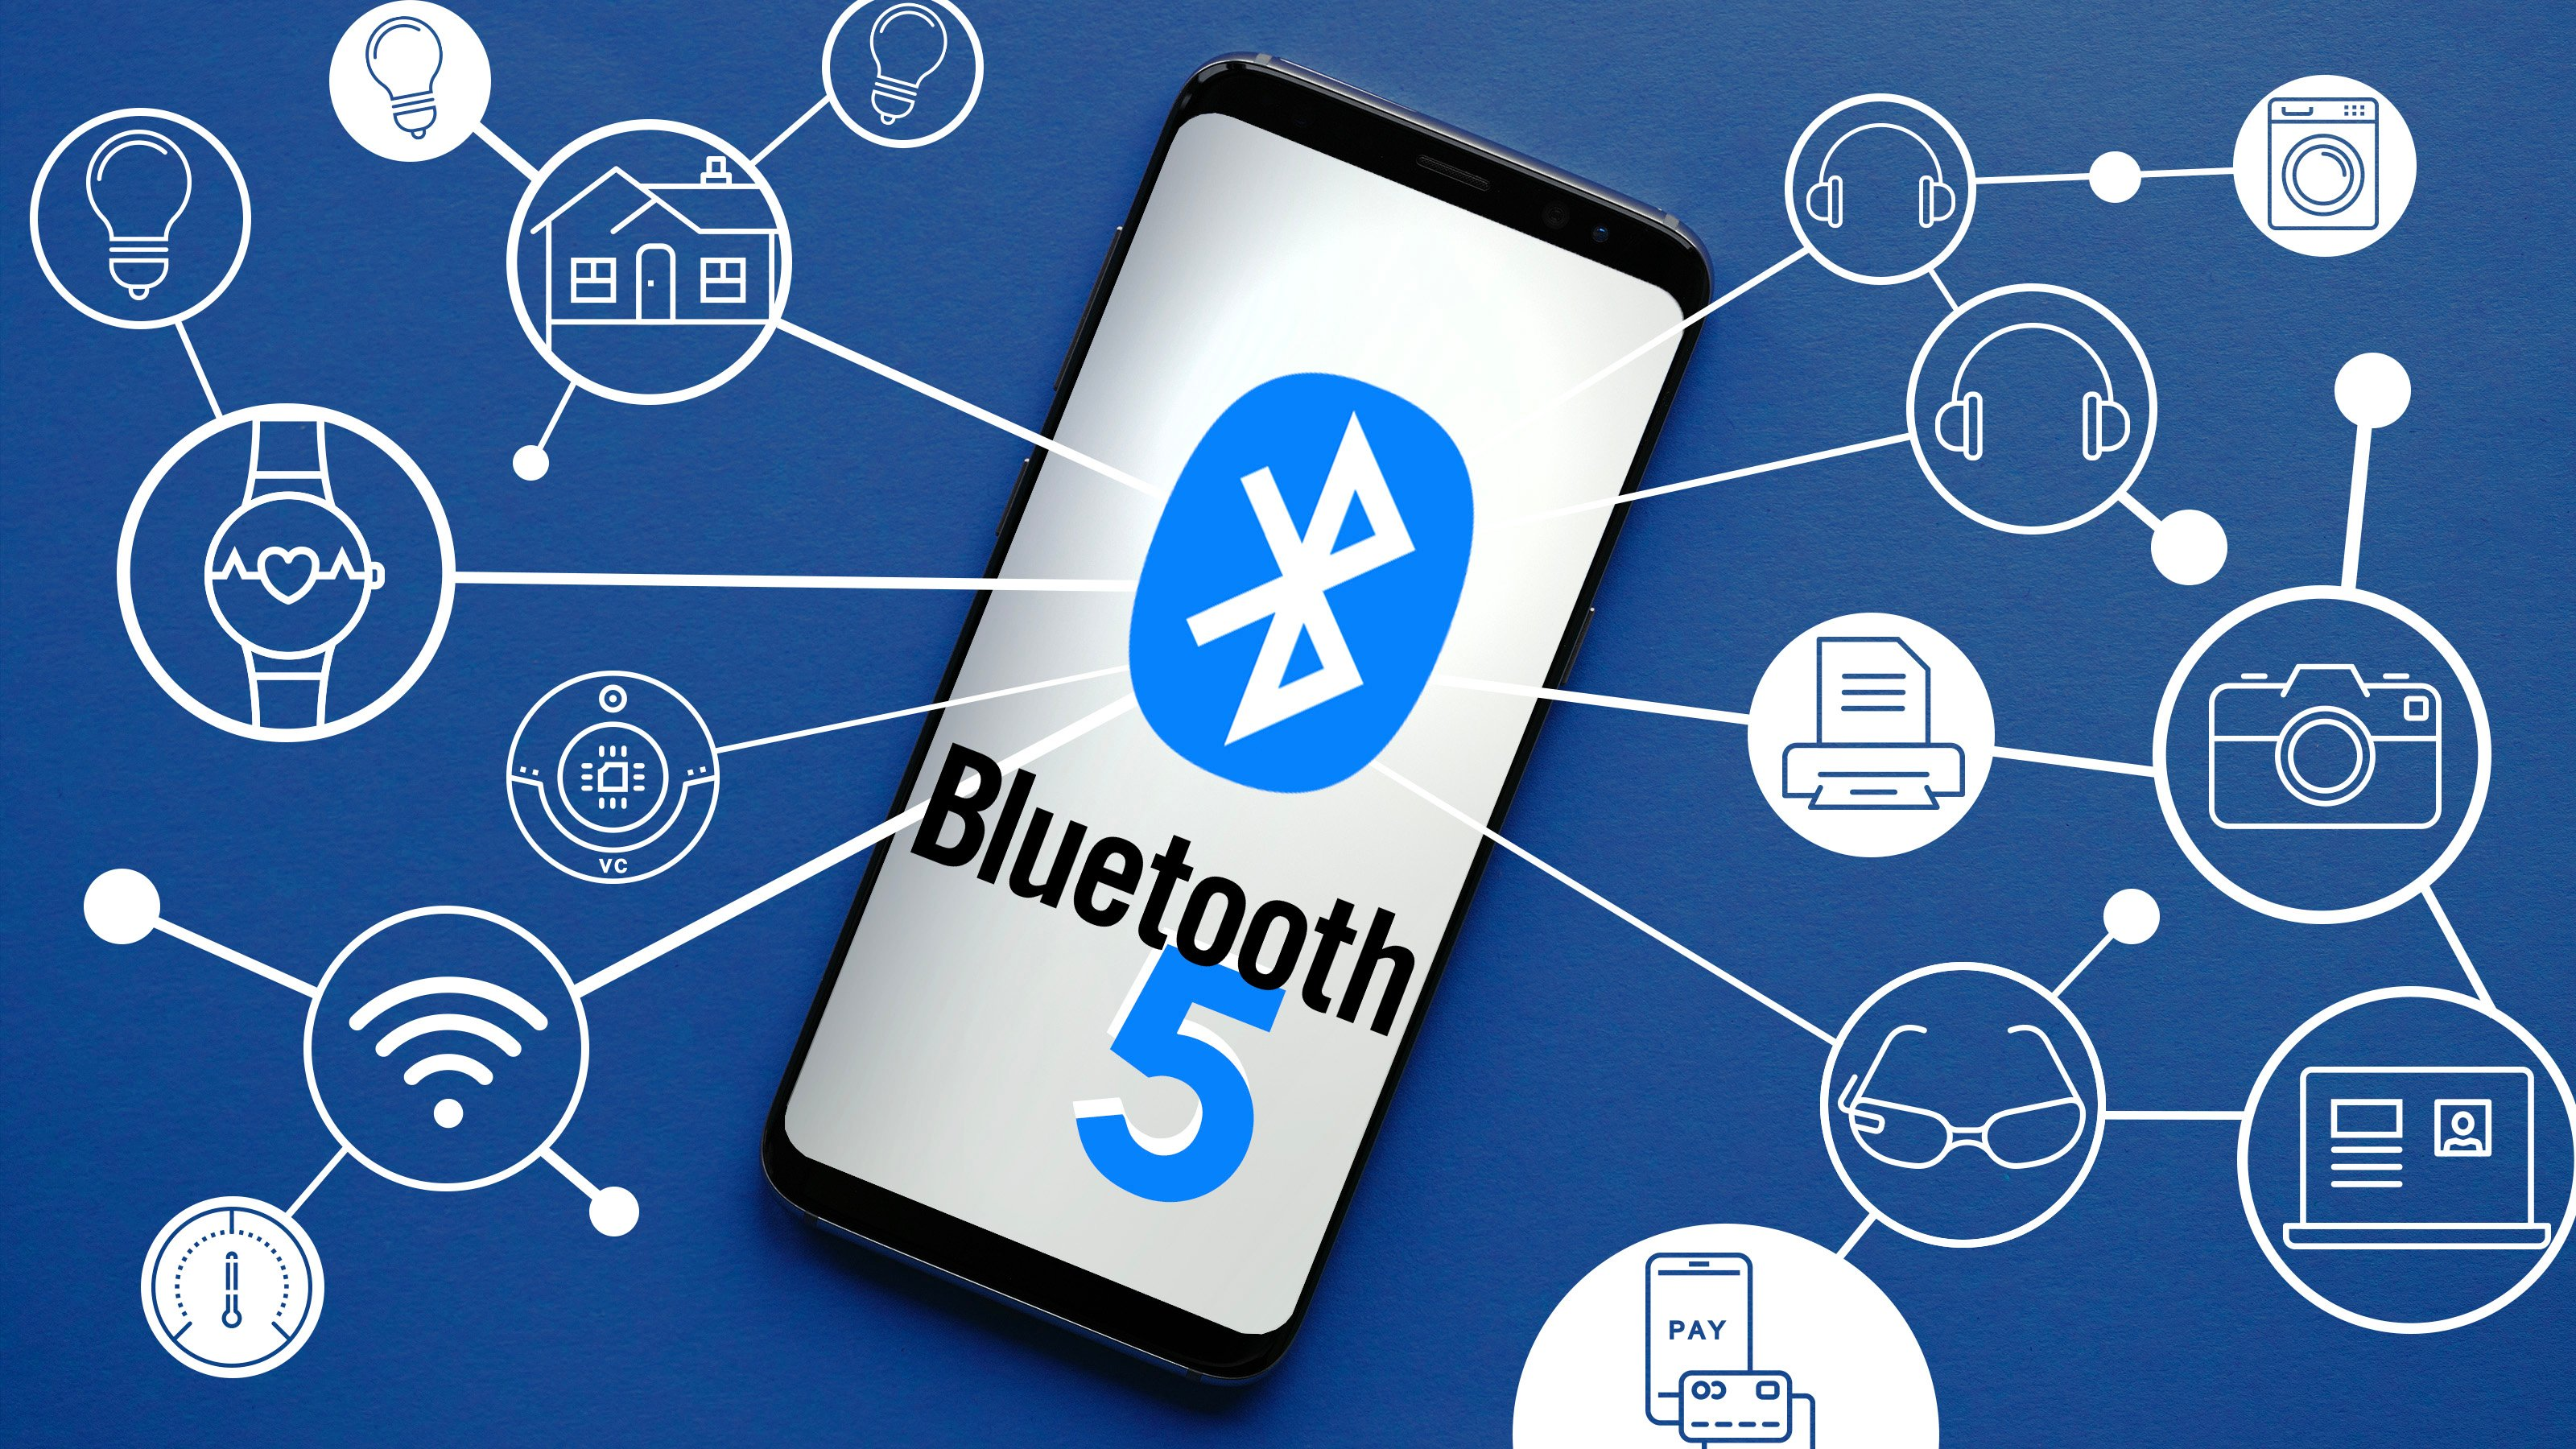 What You Don T Know About Bluetooth 5 Technology Samma3a